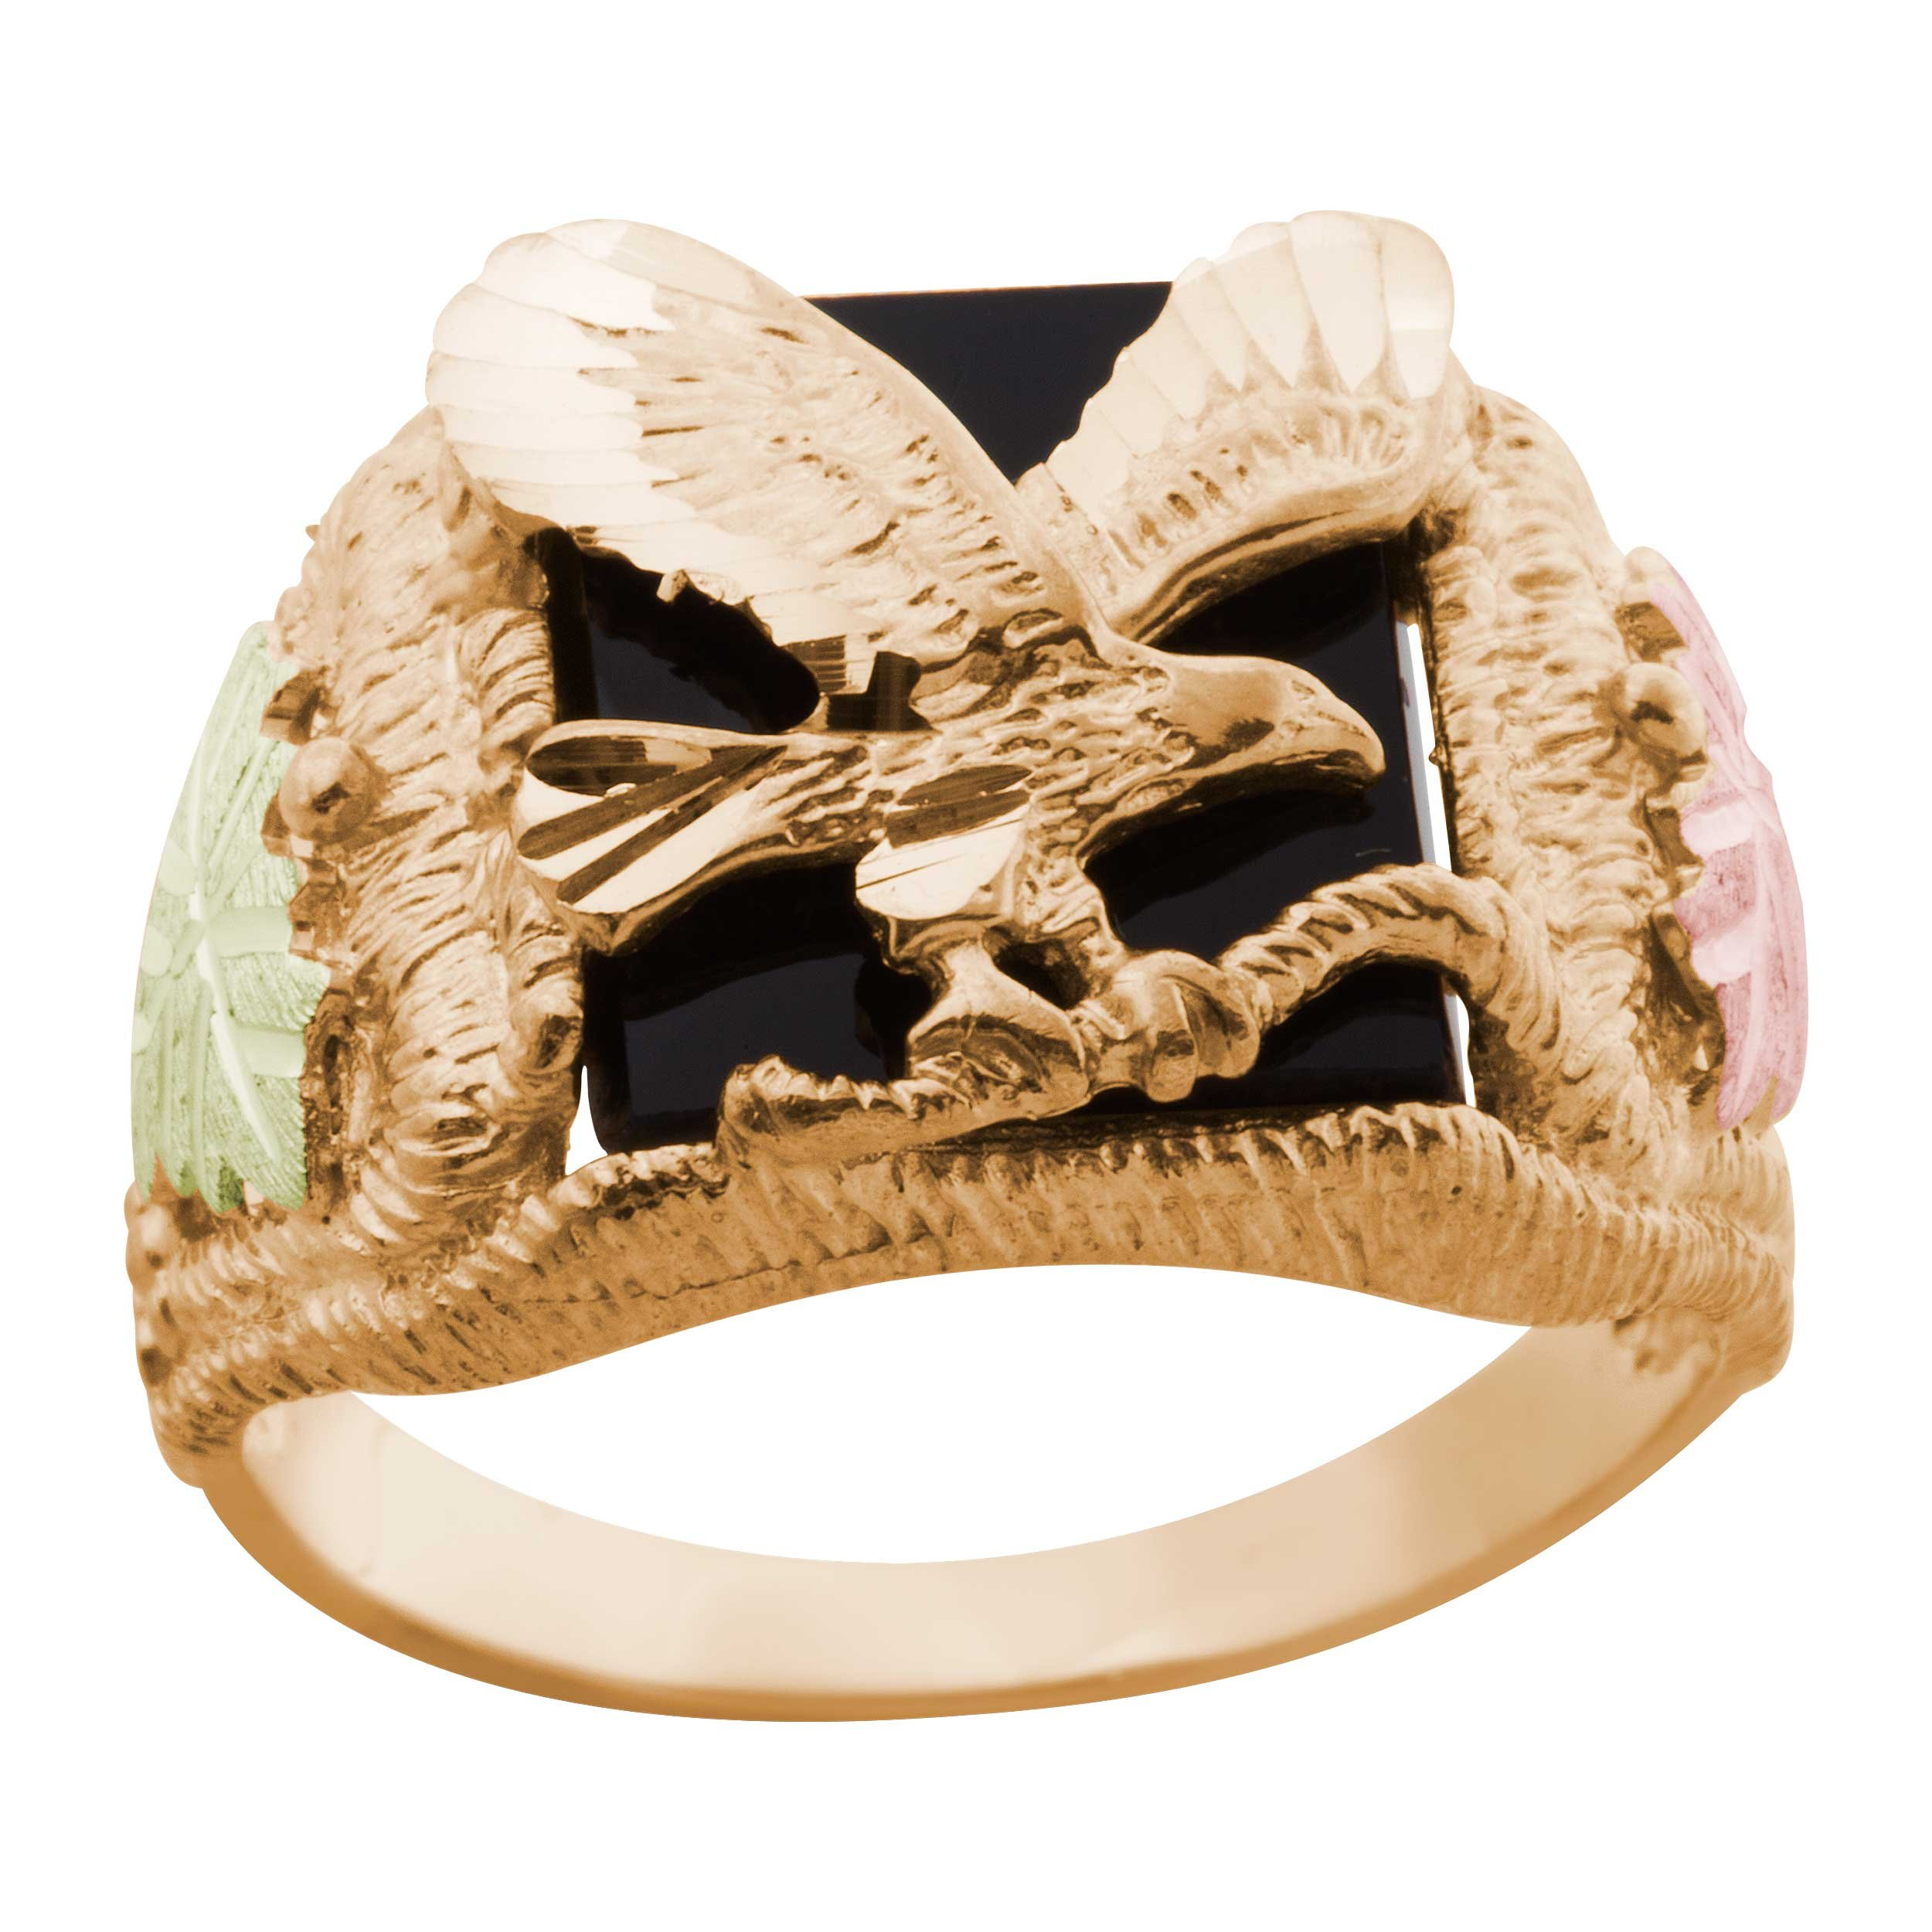 Men's Onyx Eagle Ring, 10k Yellow Gold, 12k Pink and Green Gold Black Hills Gold Motif, Size 14